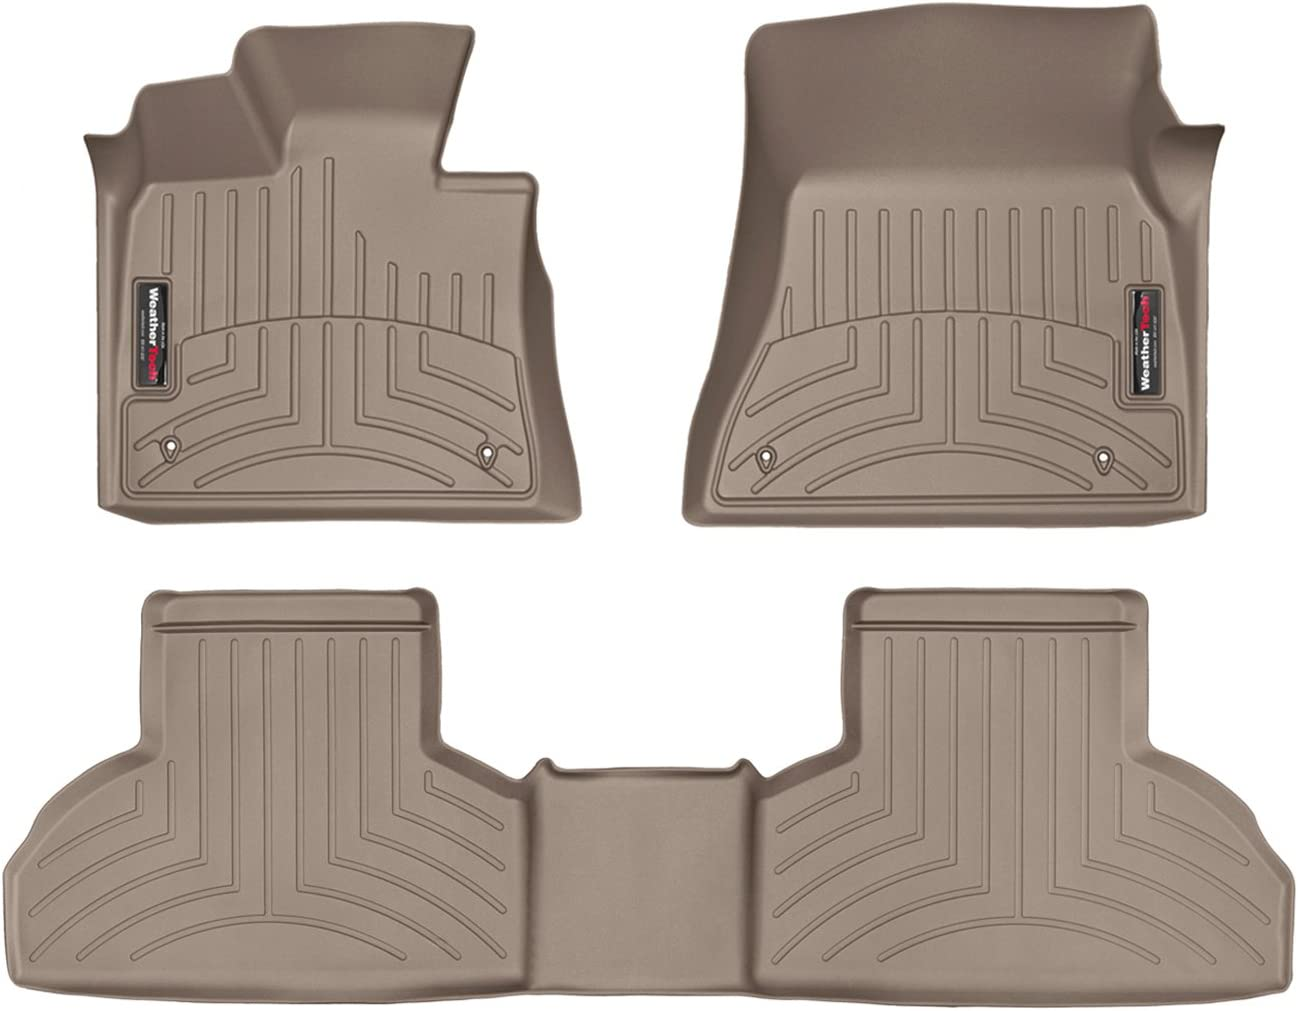 WeatherTech Custom Large discharge sale Fit FloorLiner Limited price - 45559-1-2-1st 2nd Tan Row